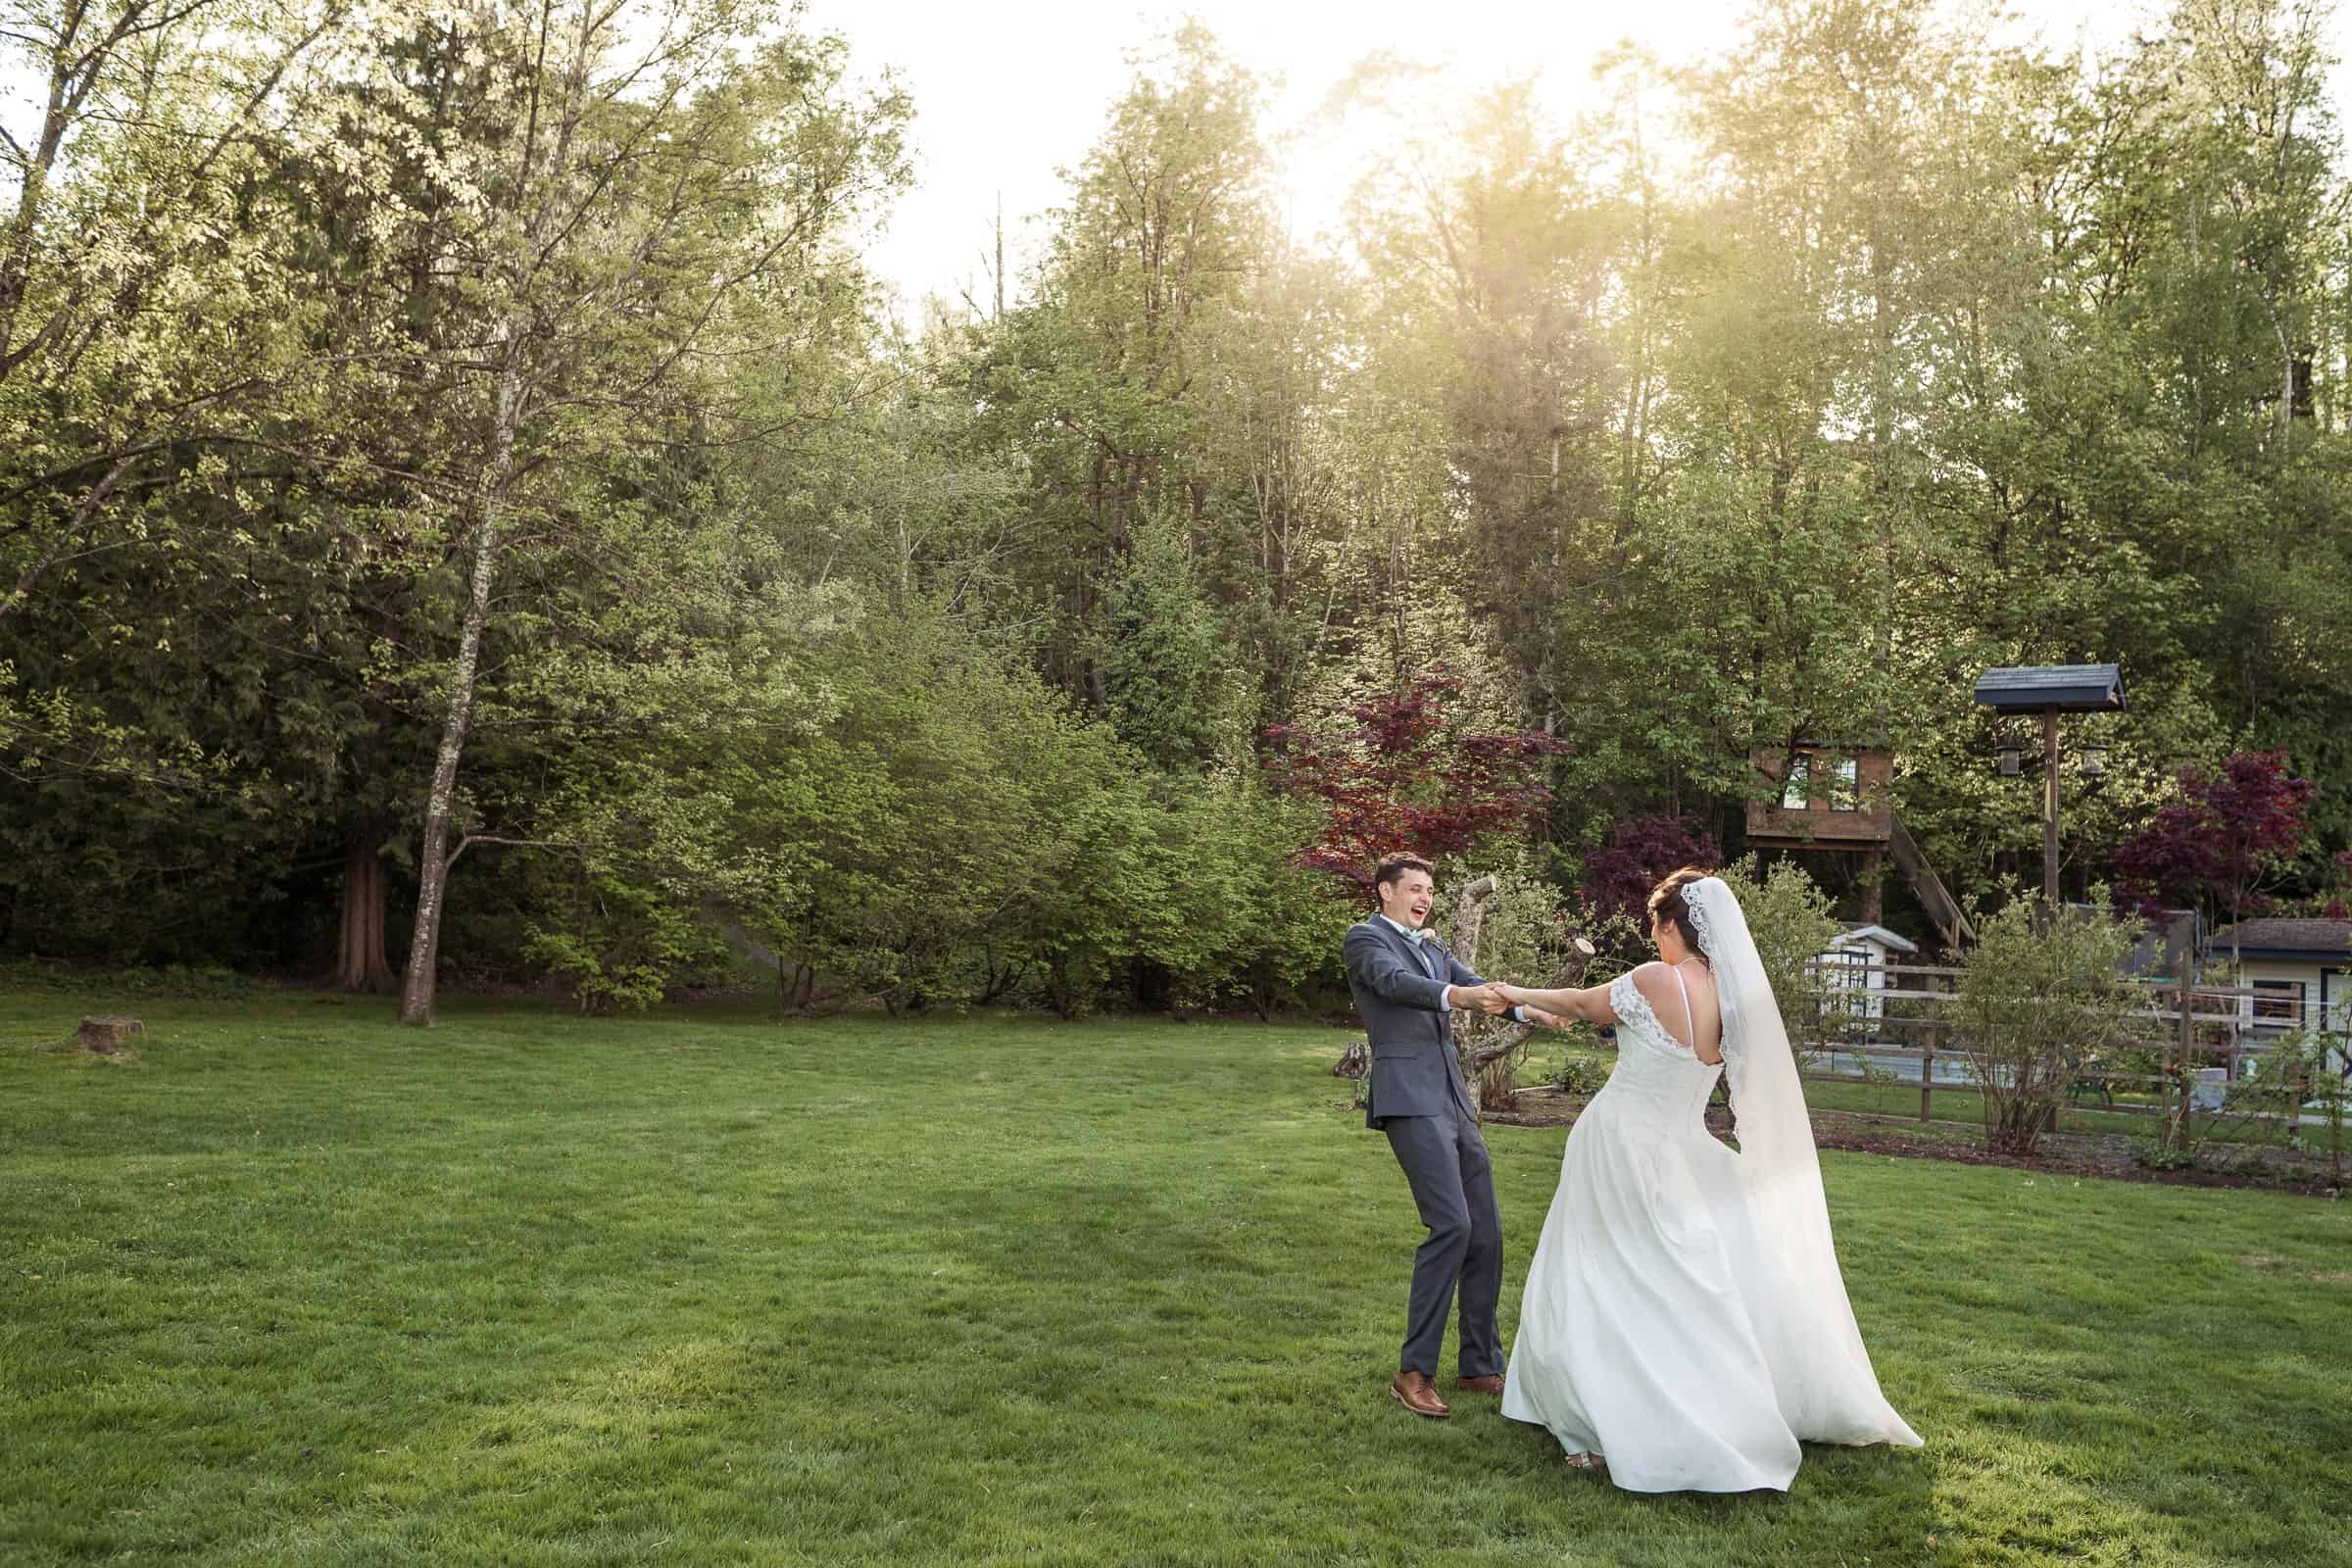 bride and groom dancing in large backyard at sunset